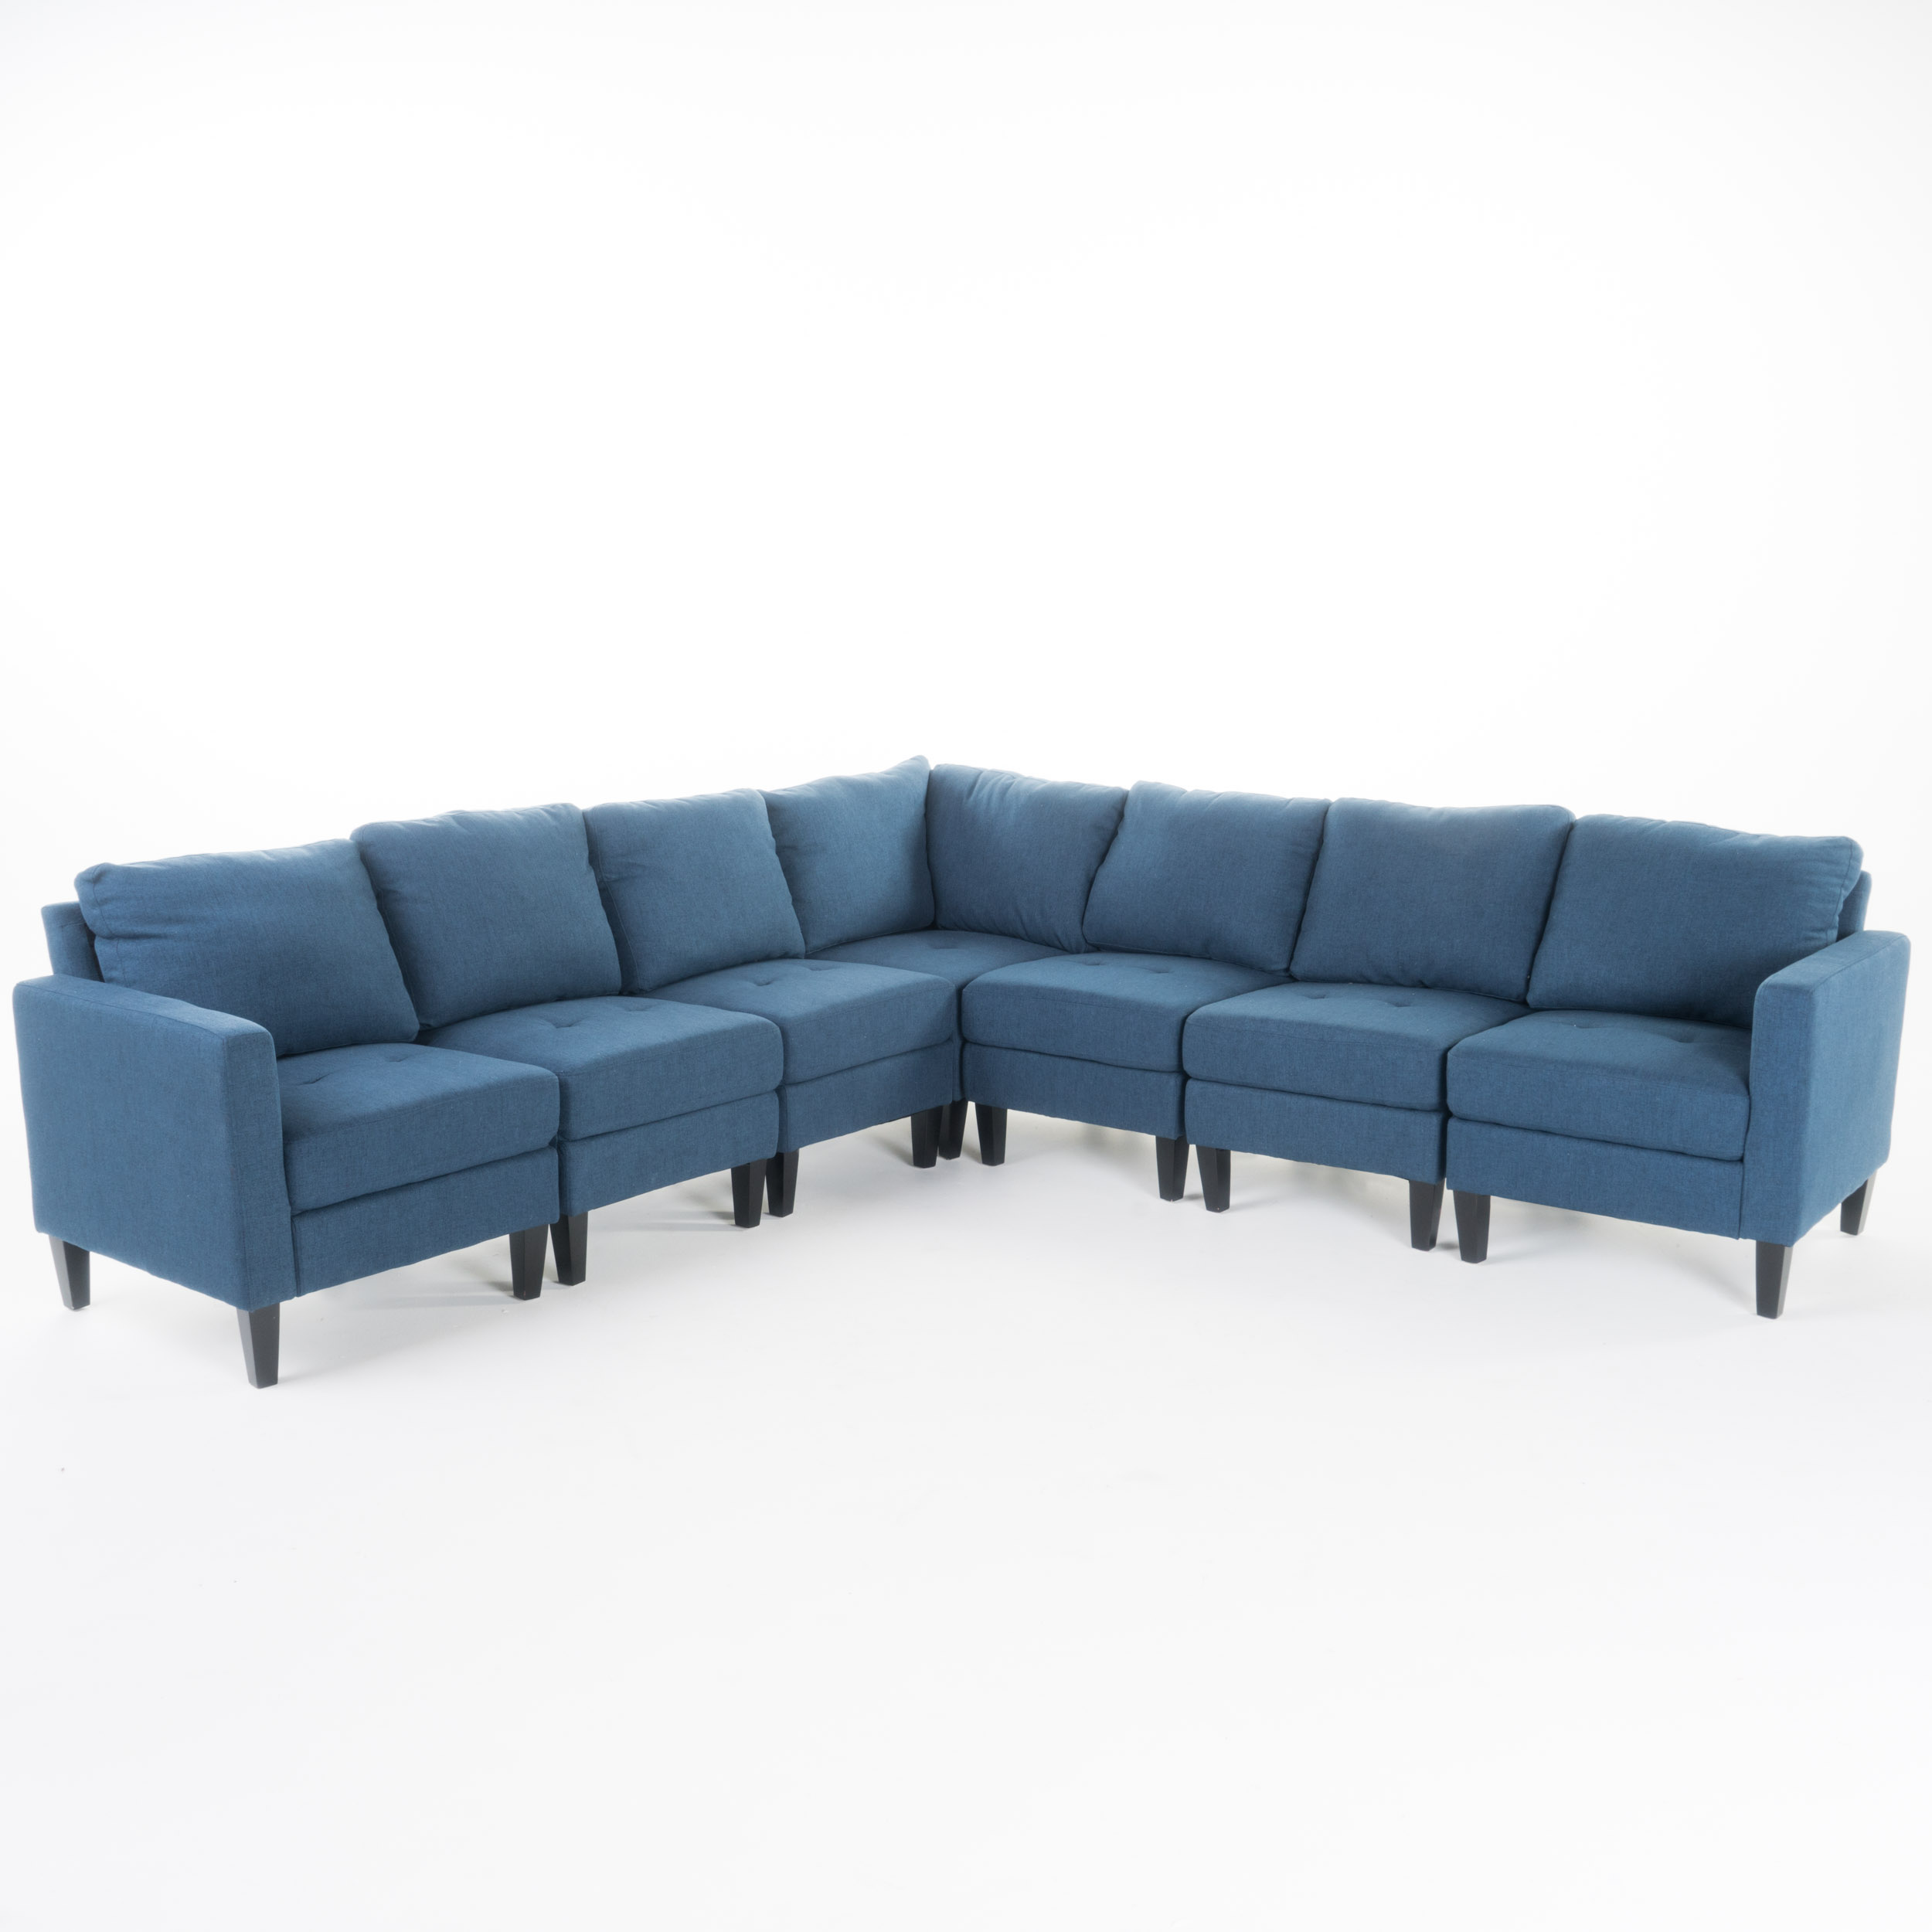 Astounding Carolina Contemporary 7 Piece Fabric Sectional Sofa With Bralicious Painted Fabric Chair Ideas Braliciousco